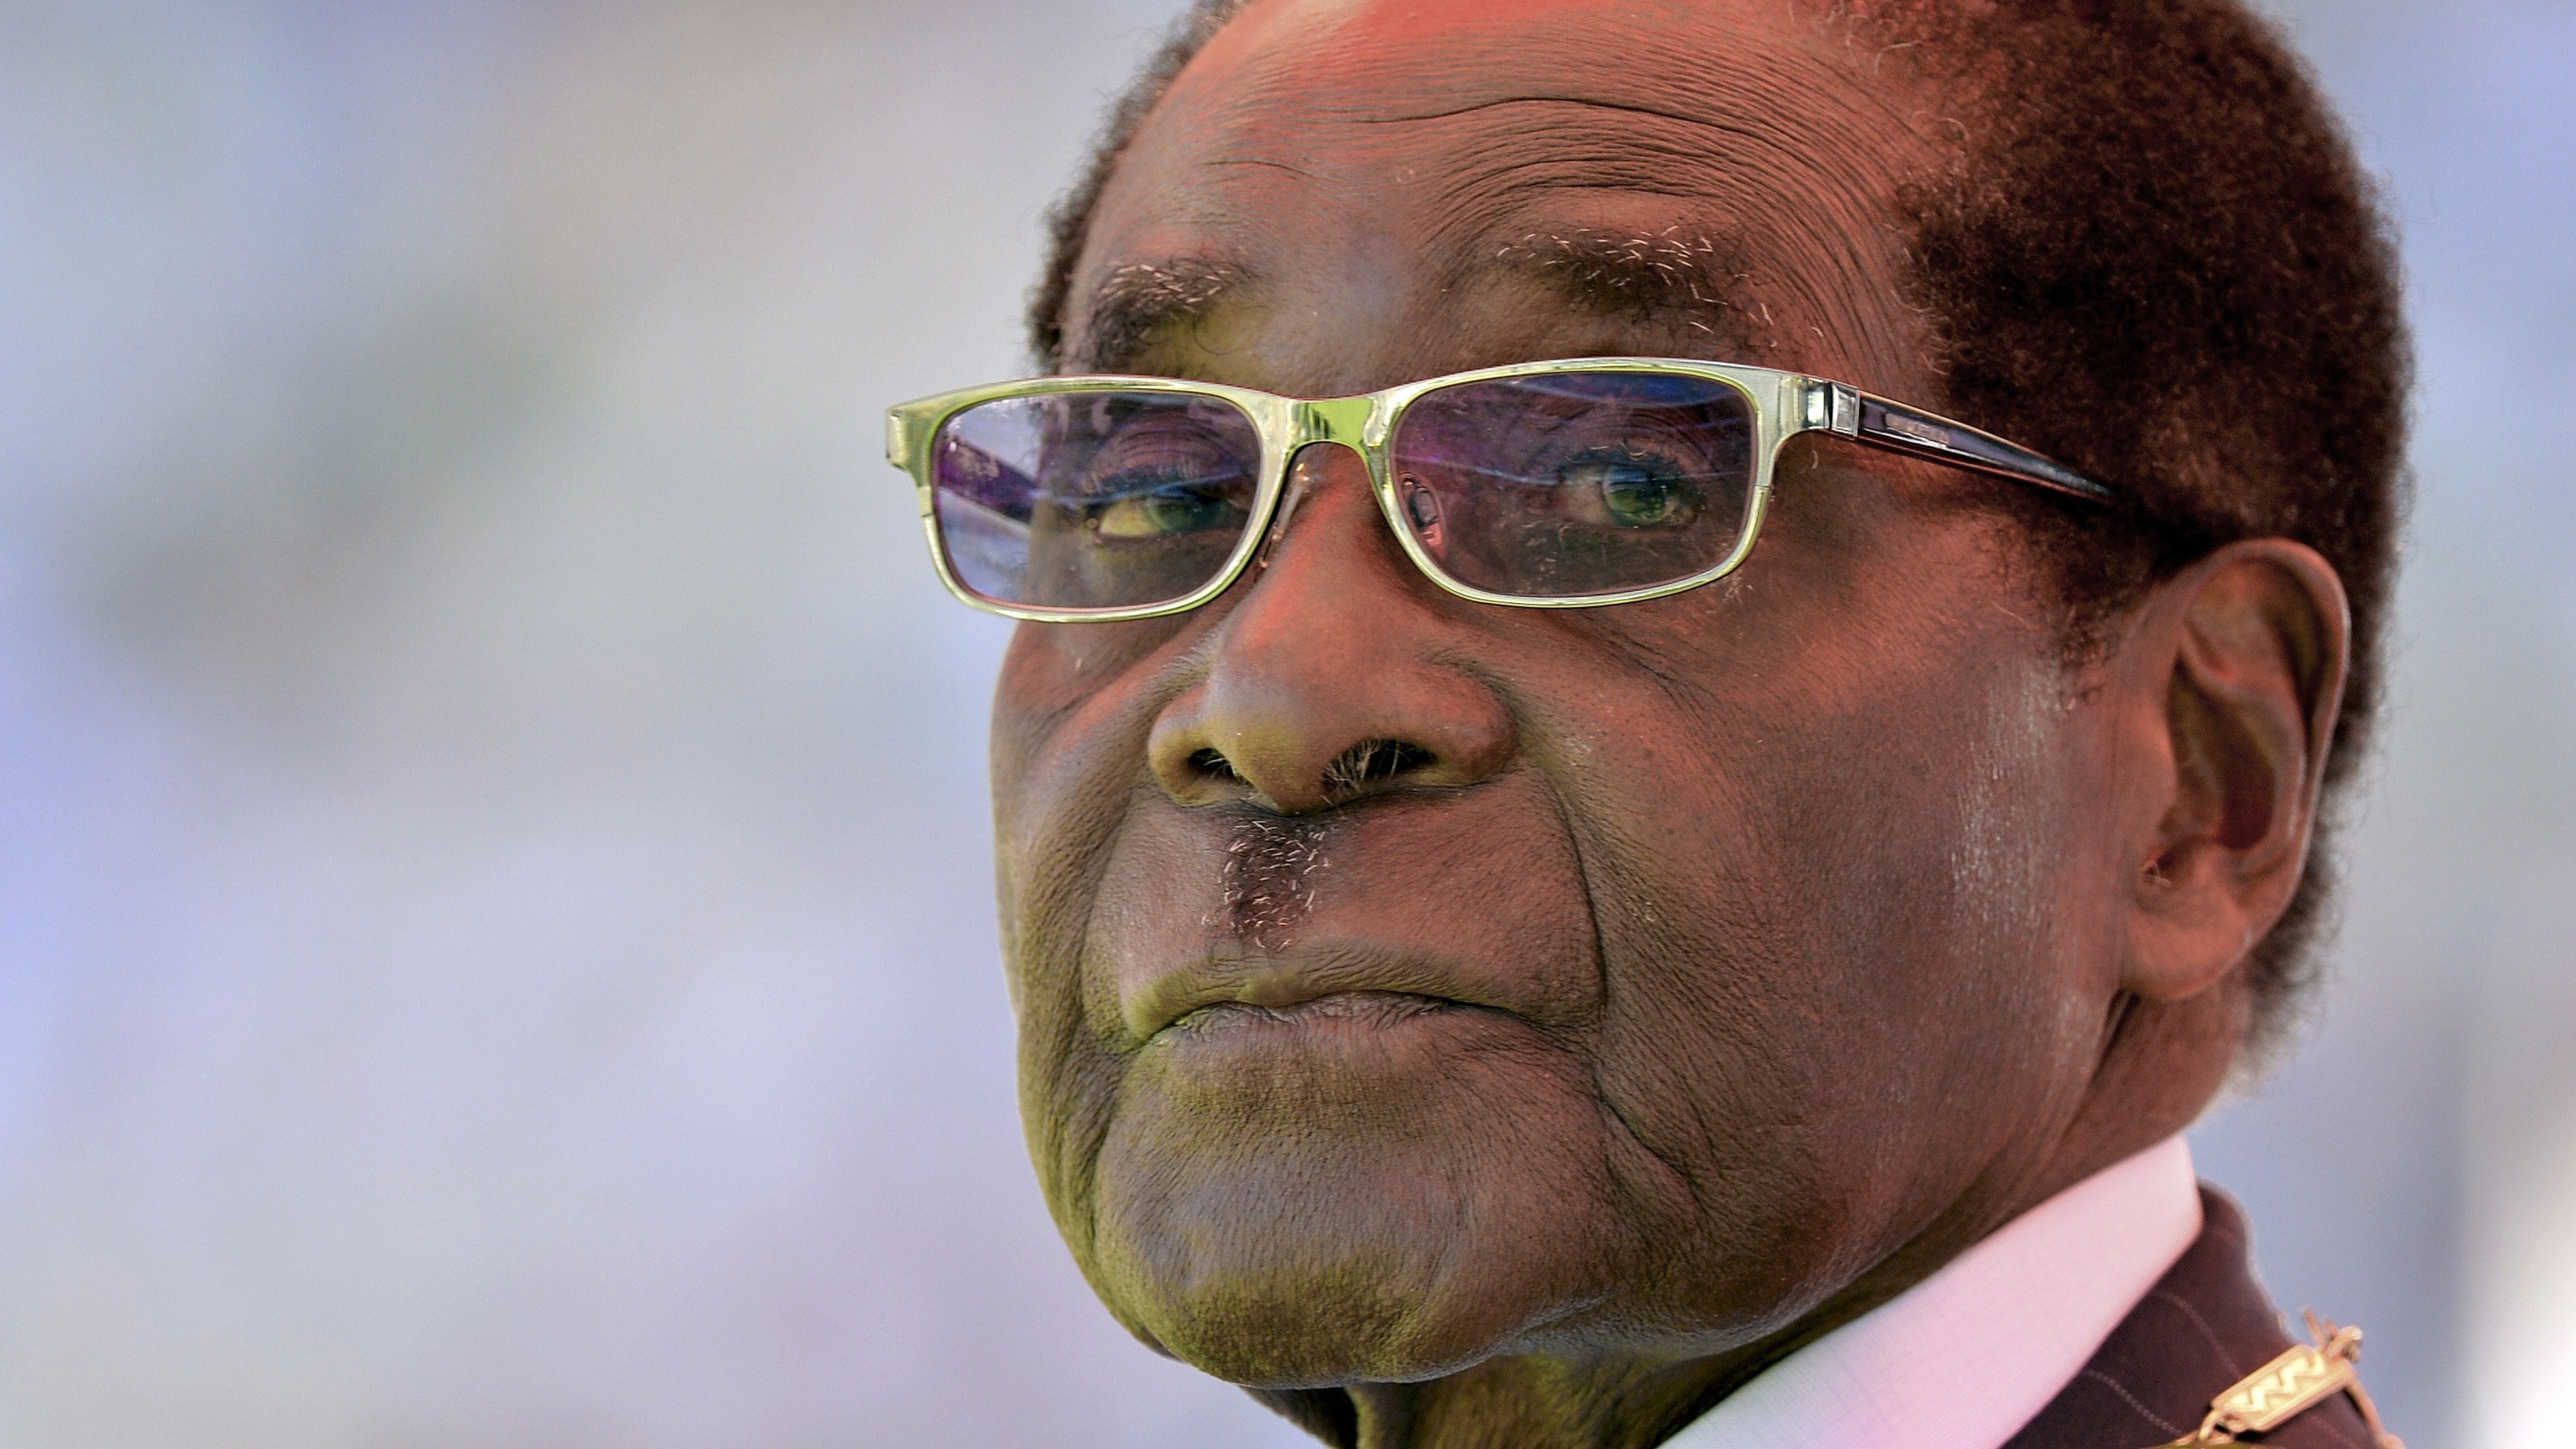 Zimbabwe's President Robert Mugabe has fired his longtime ally and vice president, potentially clearing the way for his wife, Grace Mugabe, to take the role and eventually succeed her 93-year-old husband.